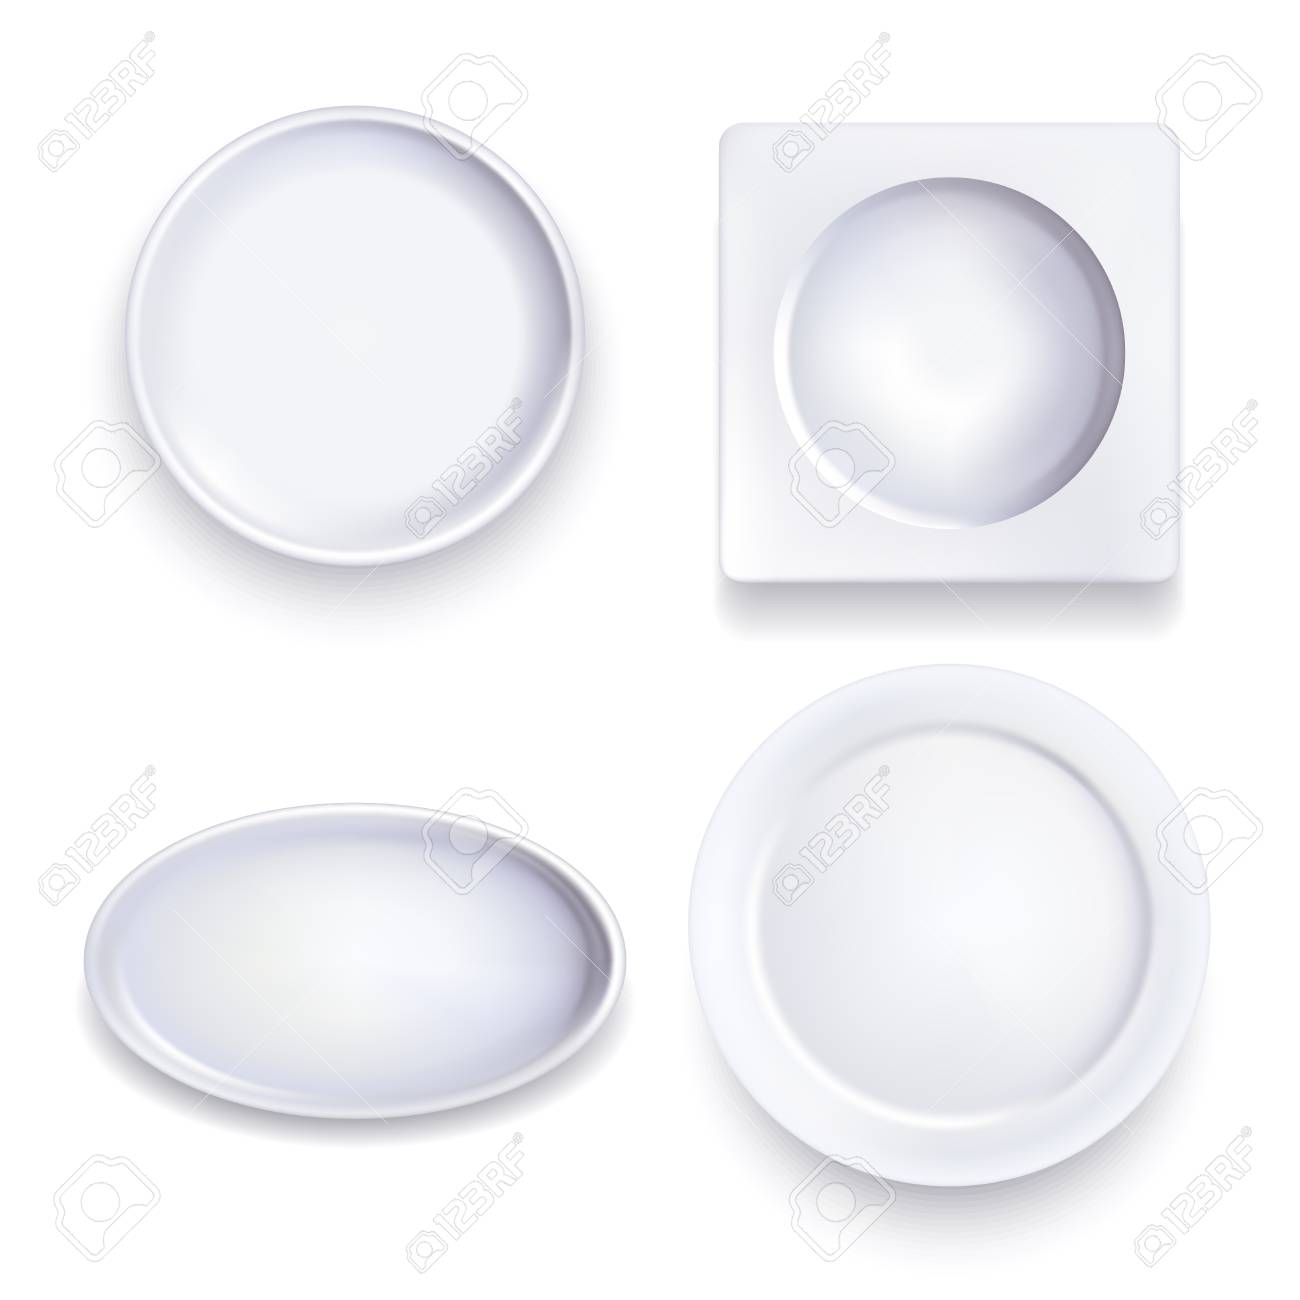 Realistic Detailed 3d Template Blank White Various Food Plates ...